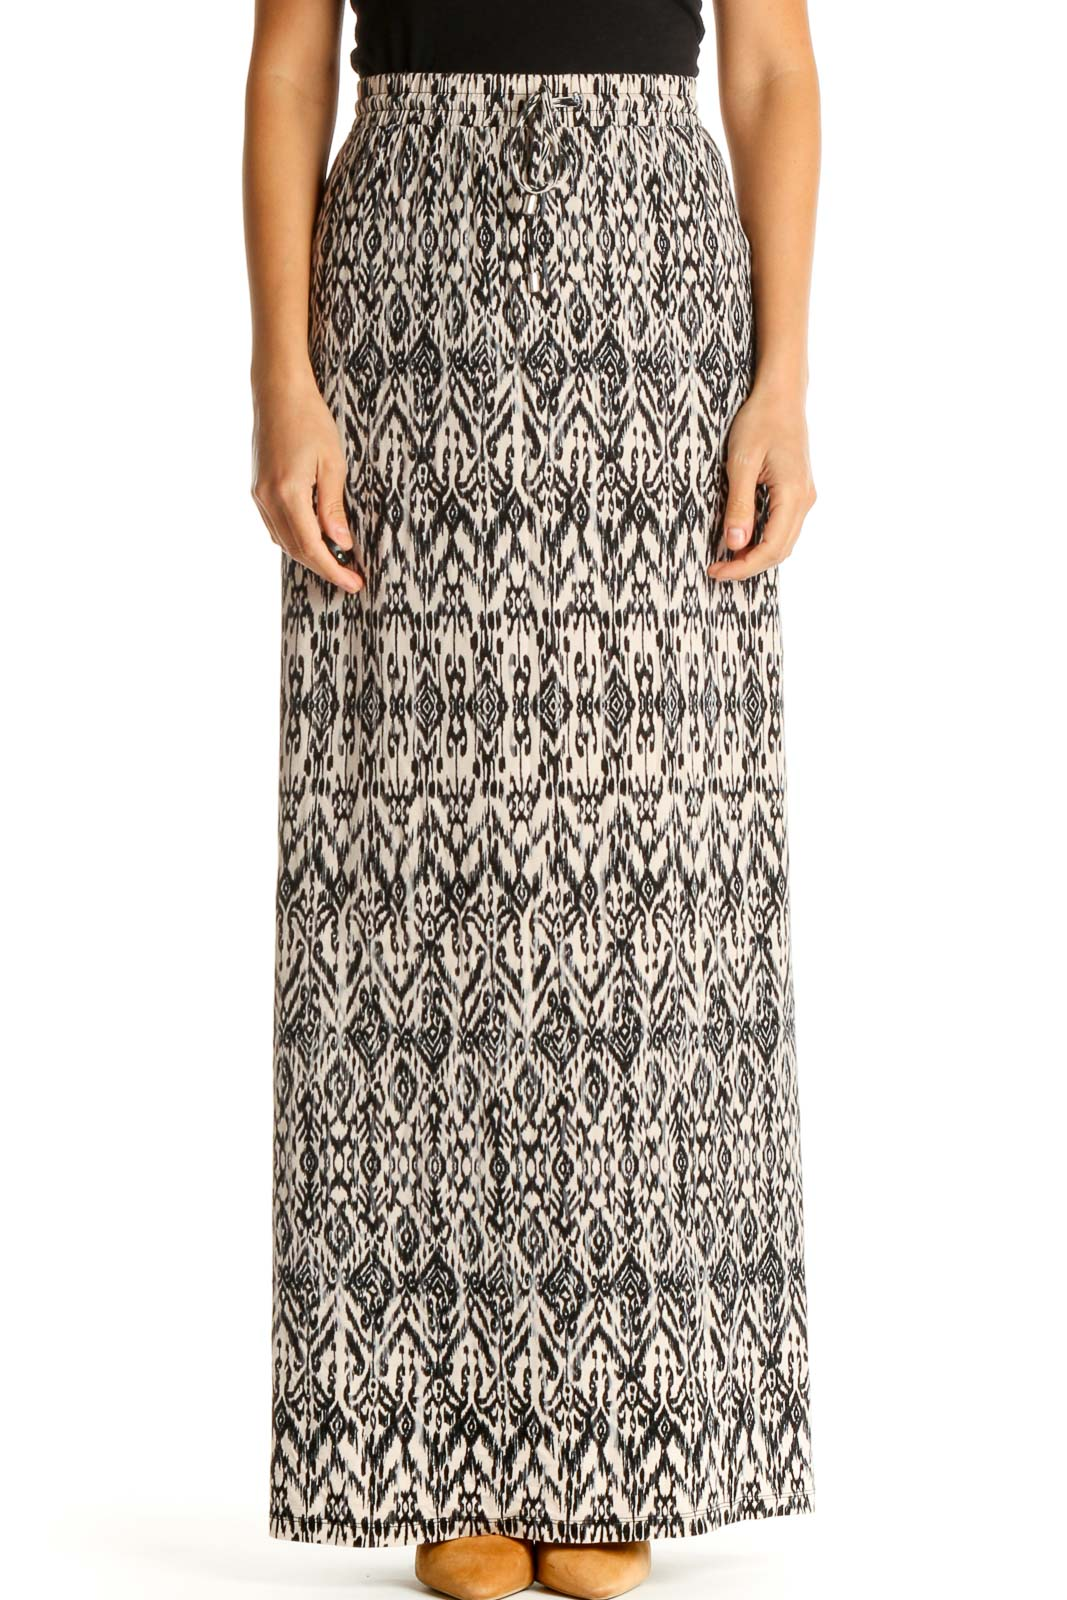 Beige Printed Bohemian A-Line Skirt Front